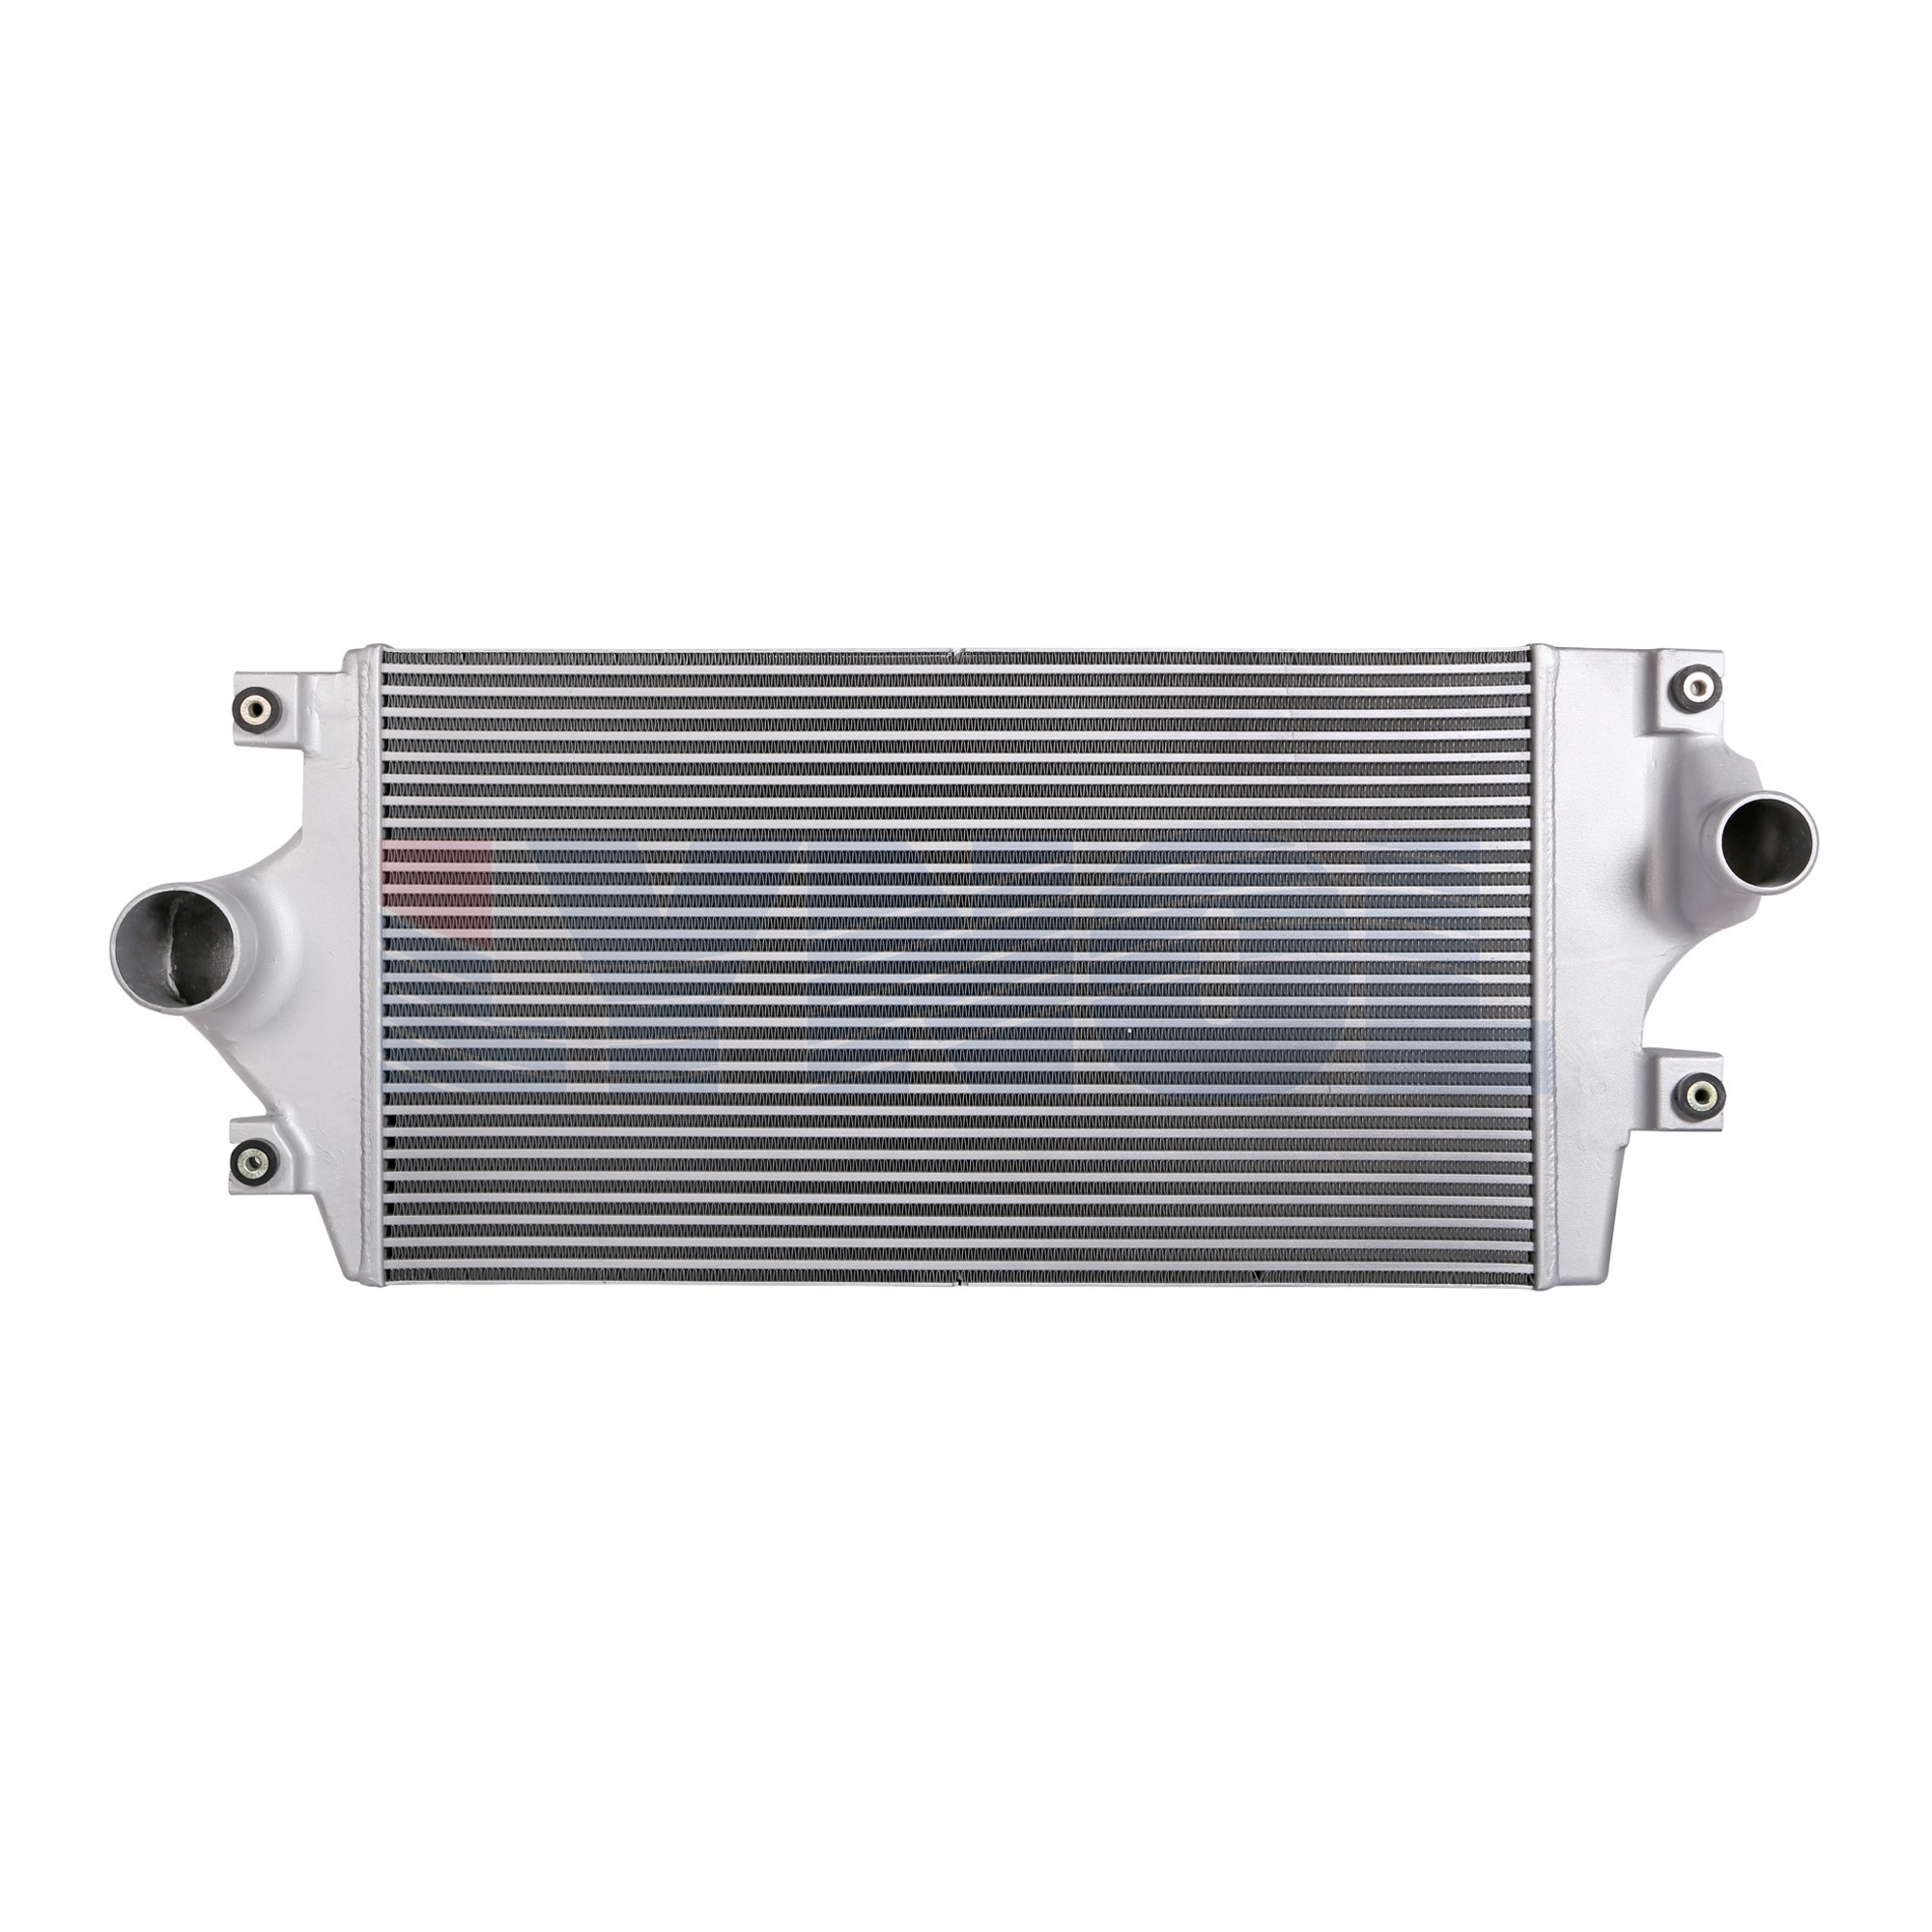 2408-009 - International / Navistar Charge Air Cooler